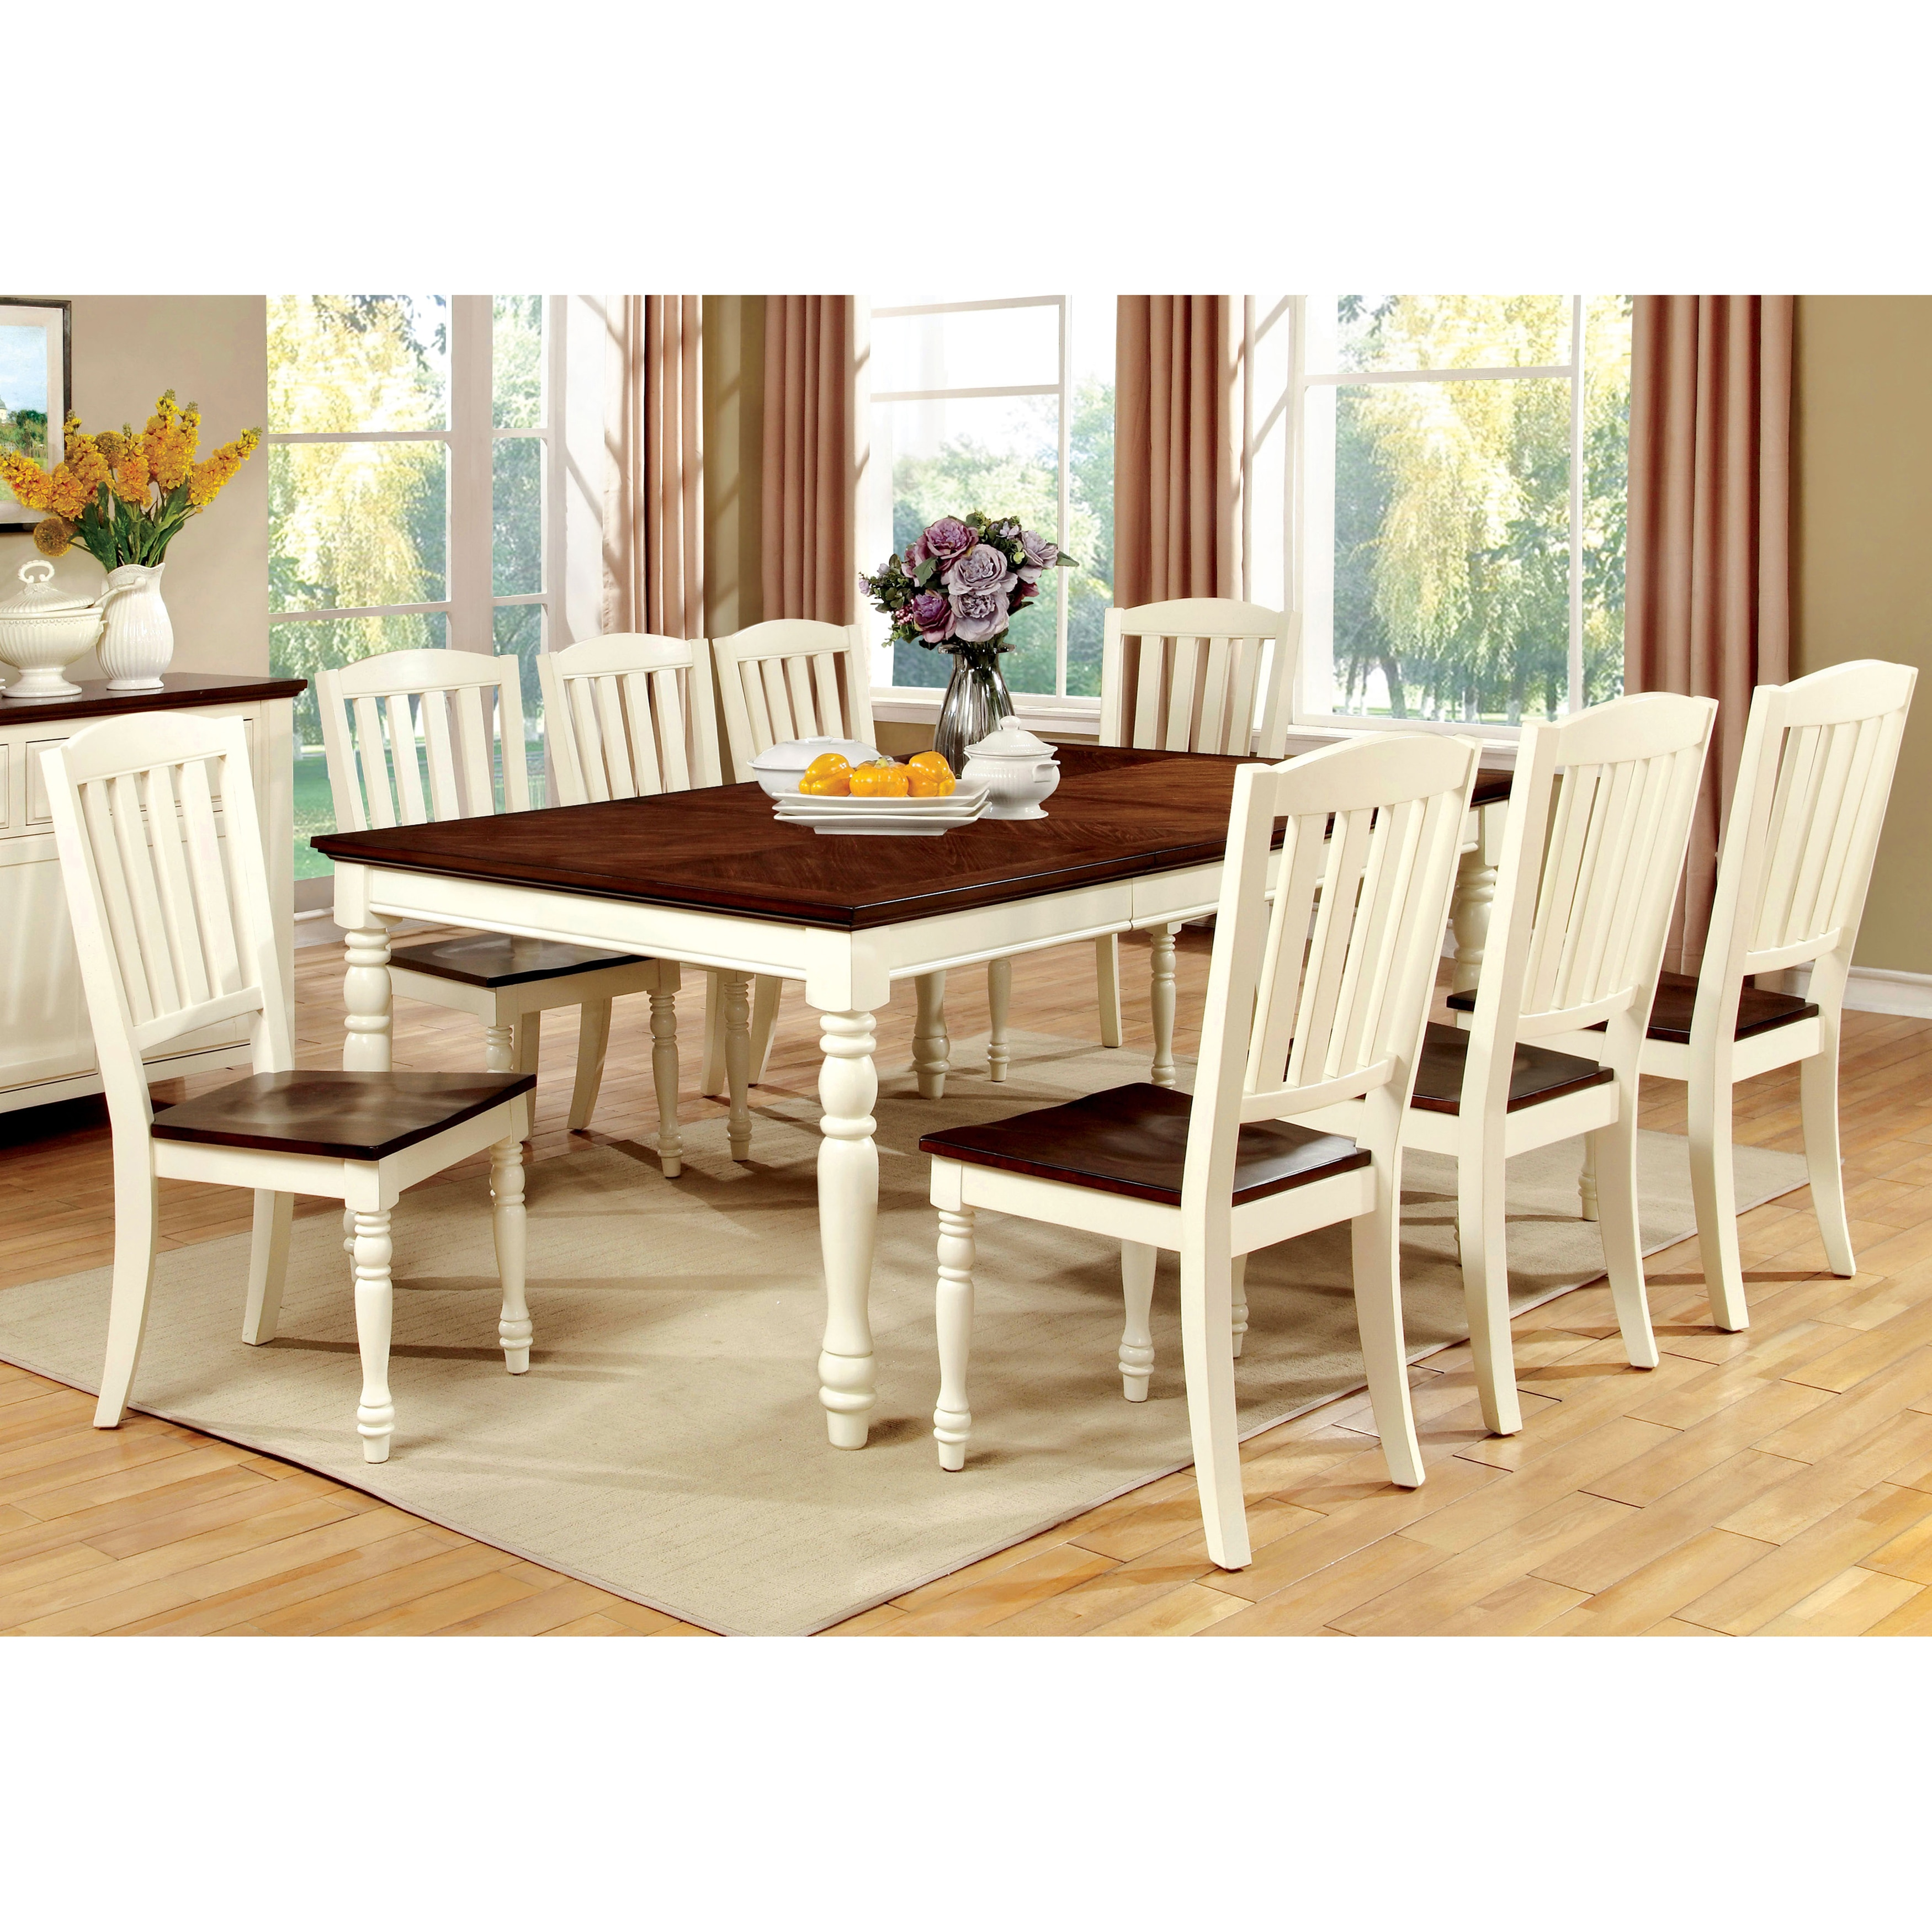 inspiring chairs rugs best cottage area room dining style set of fresh cottages